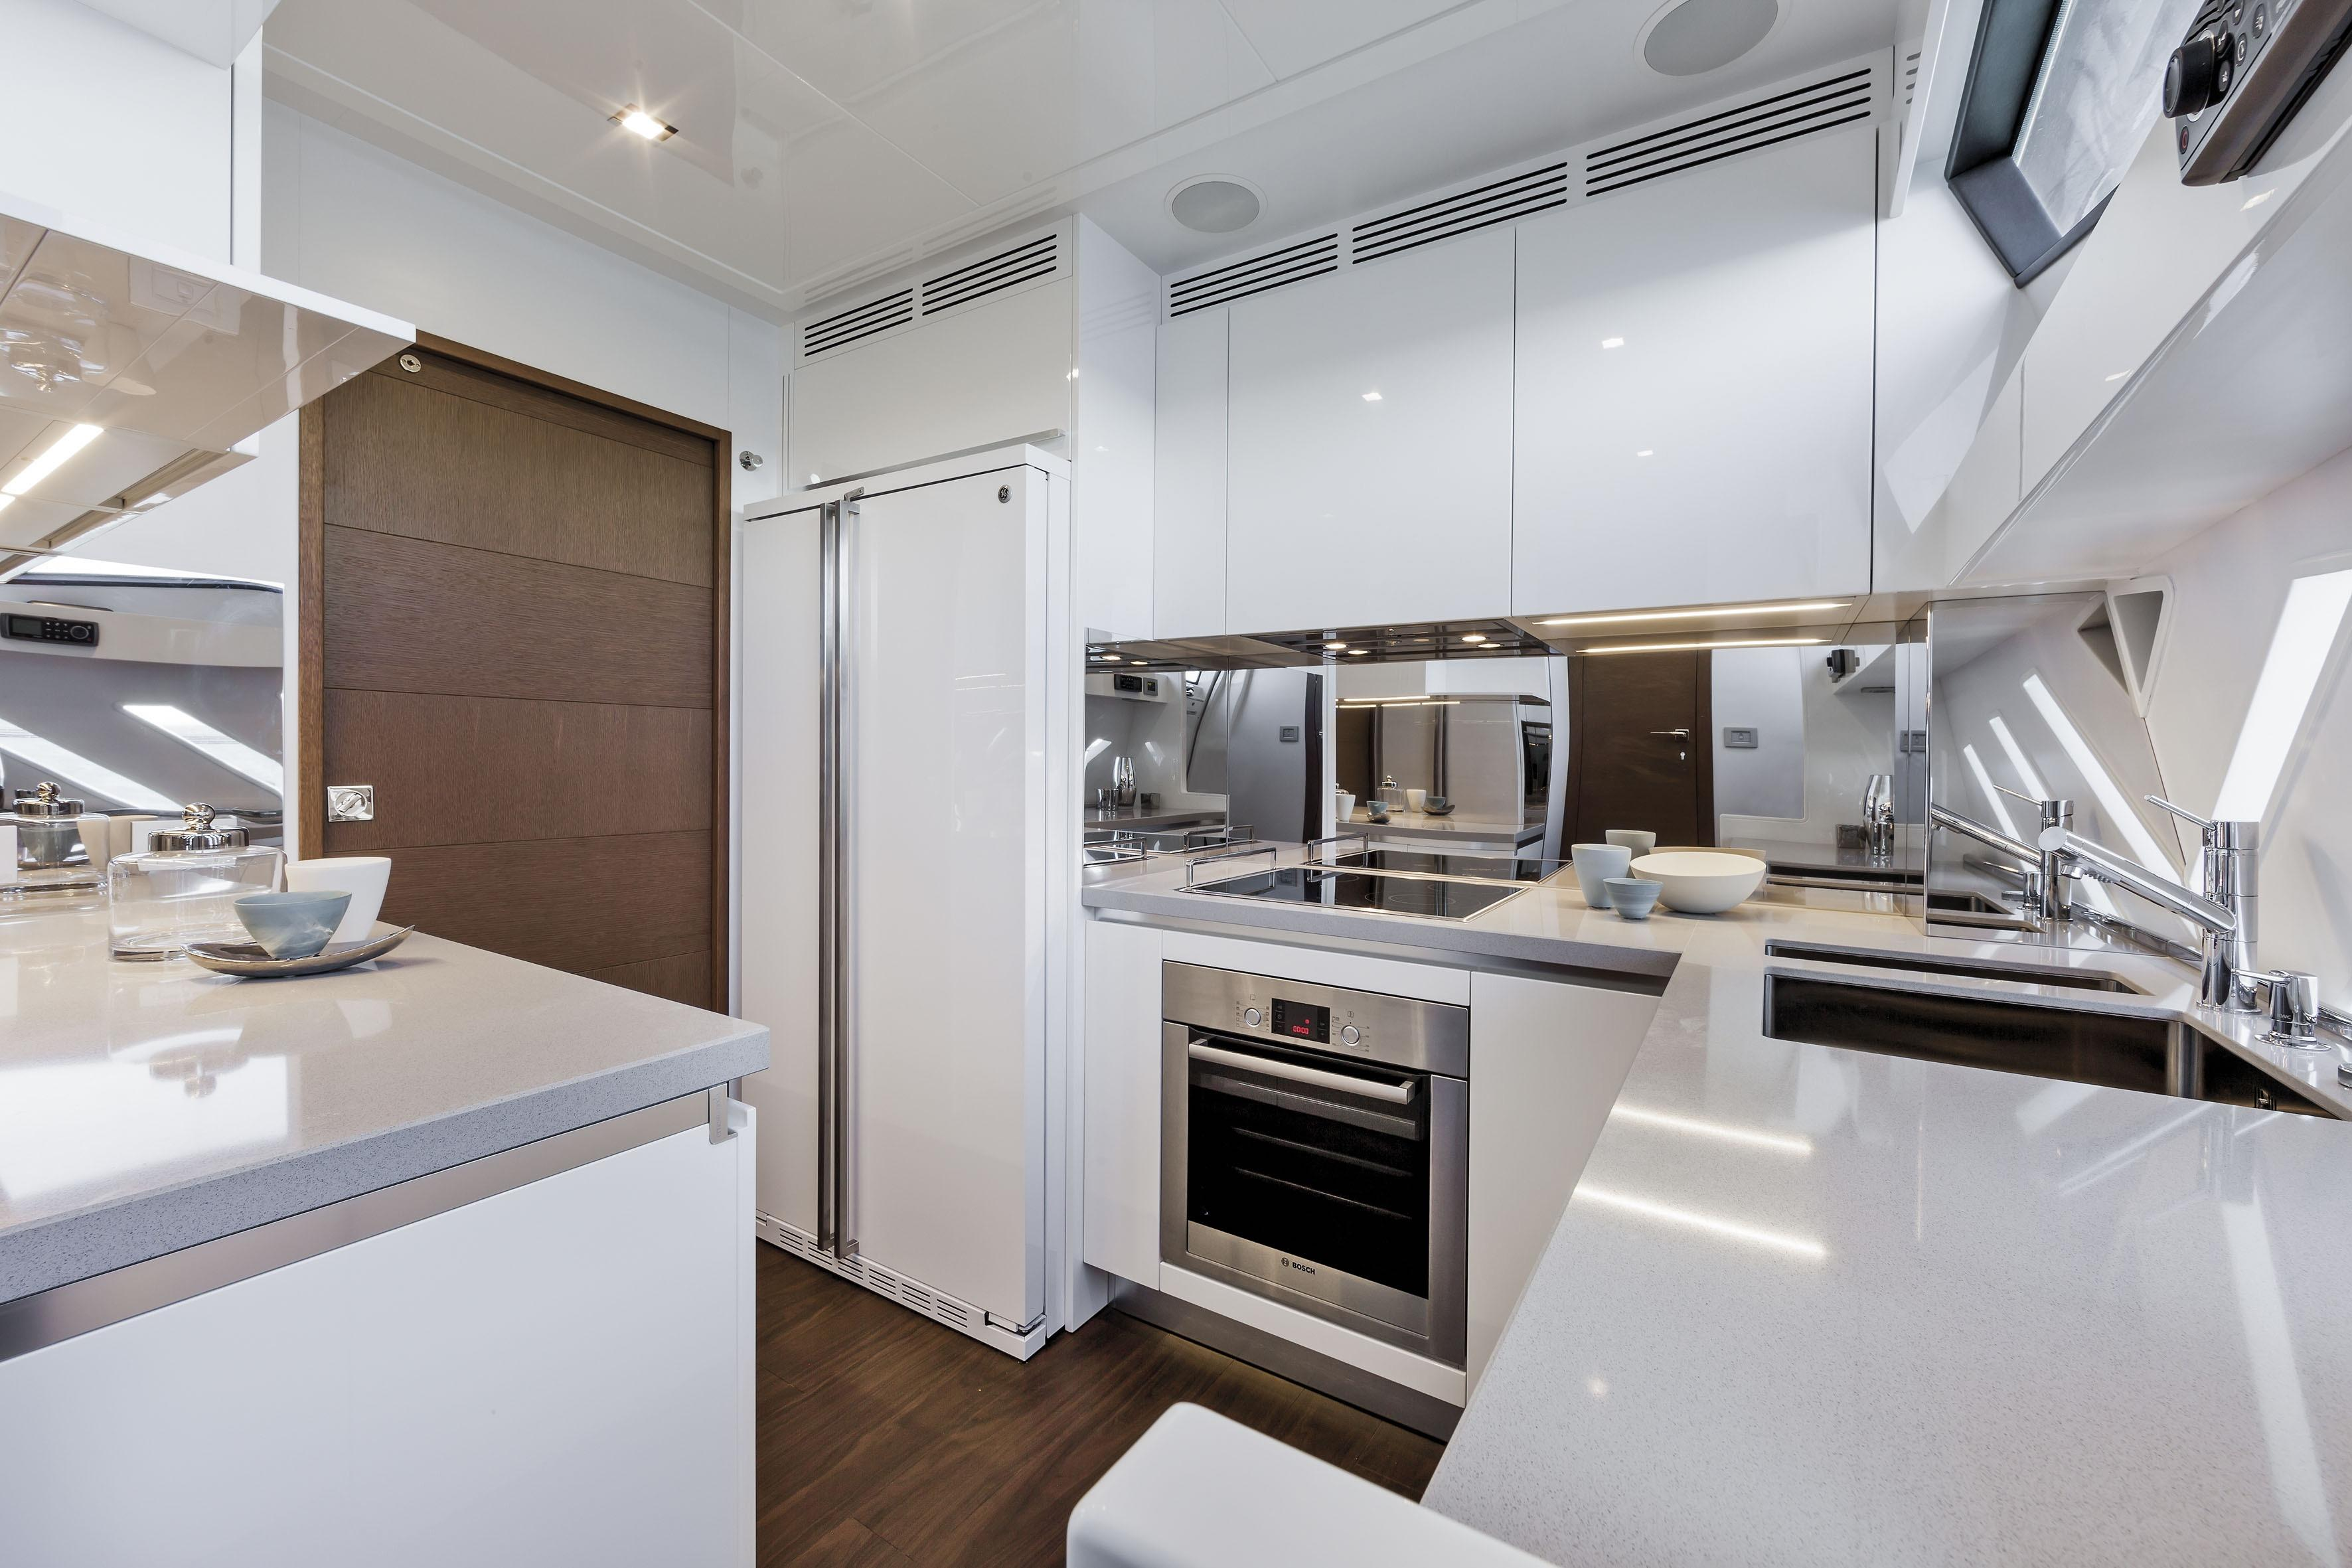 Manufacturer Provided Image: Ferretti 870 Galley